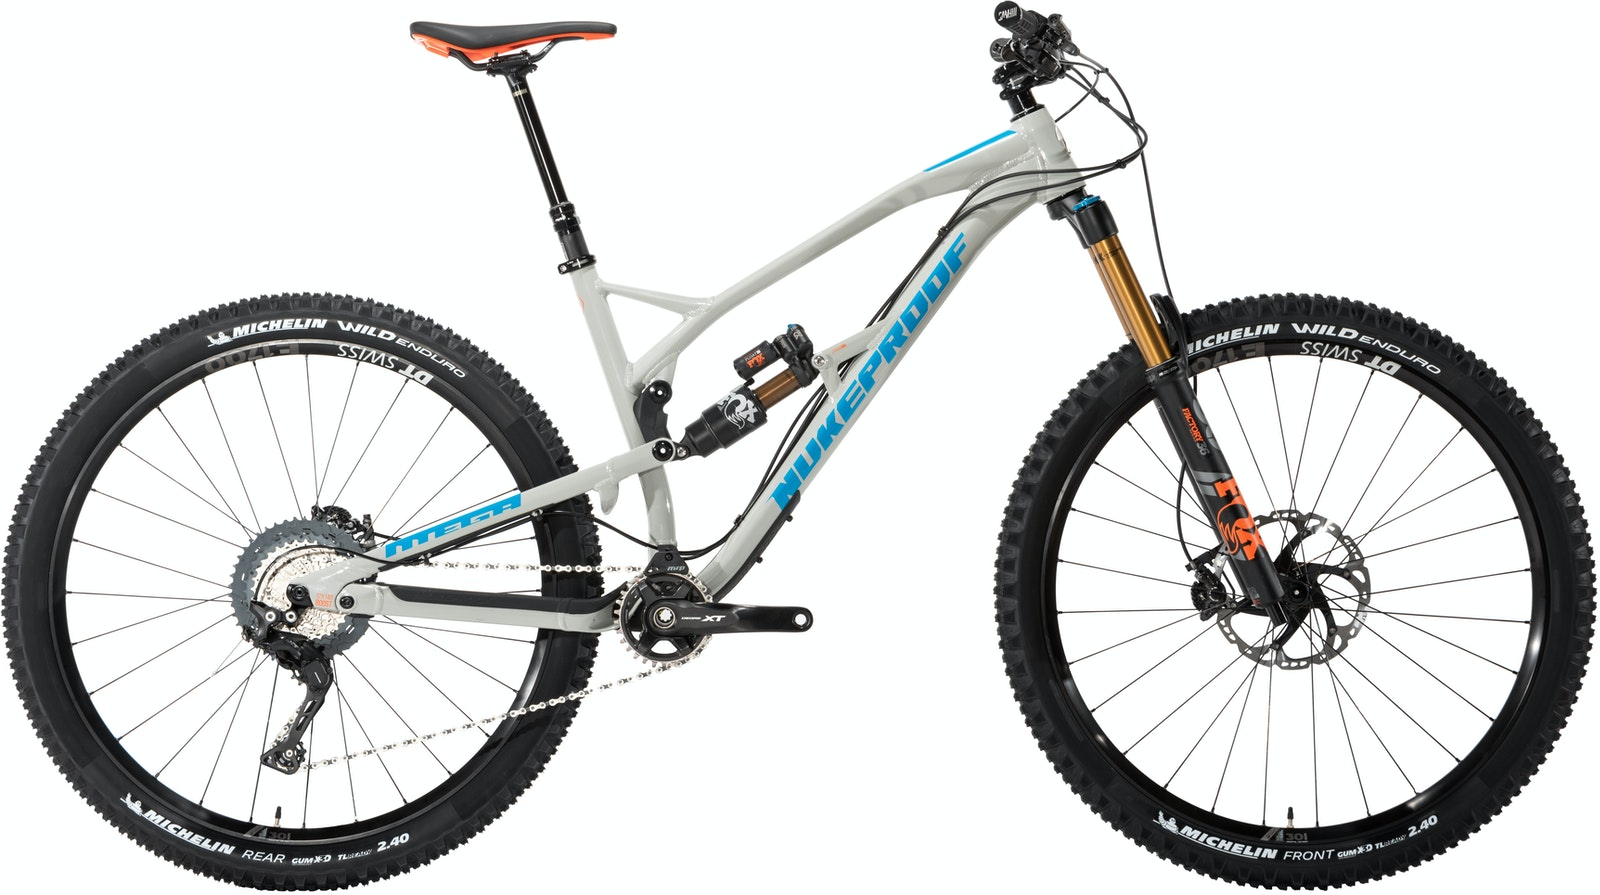 Nukeproof Mega 290 Factory 2019